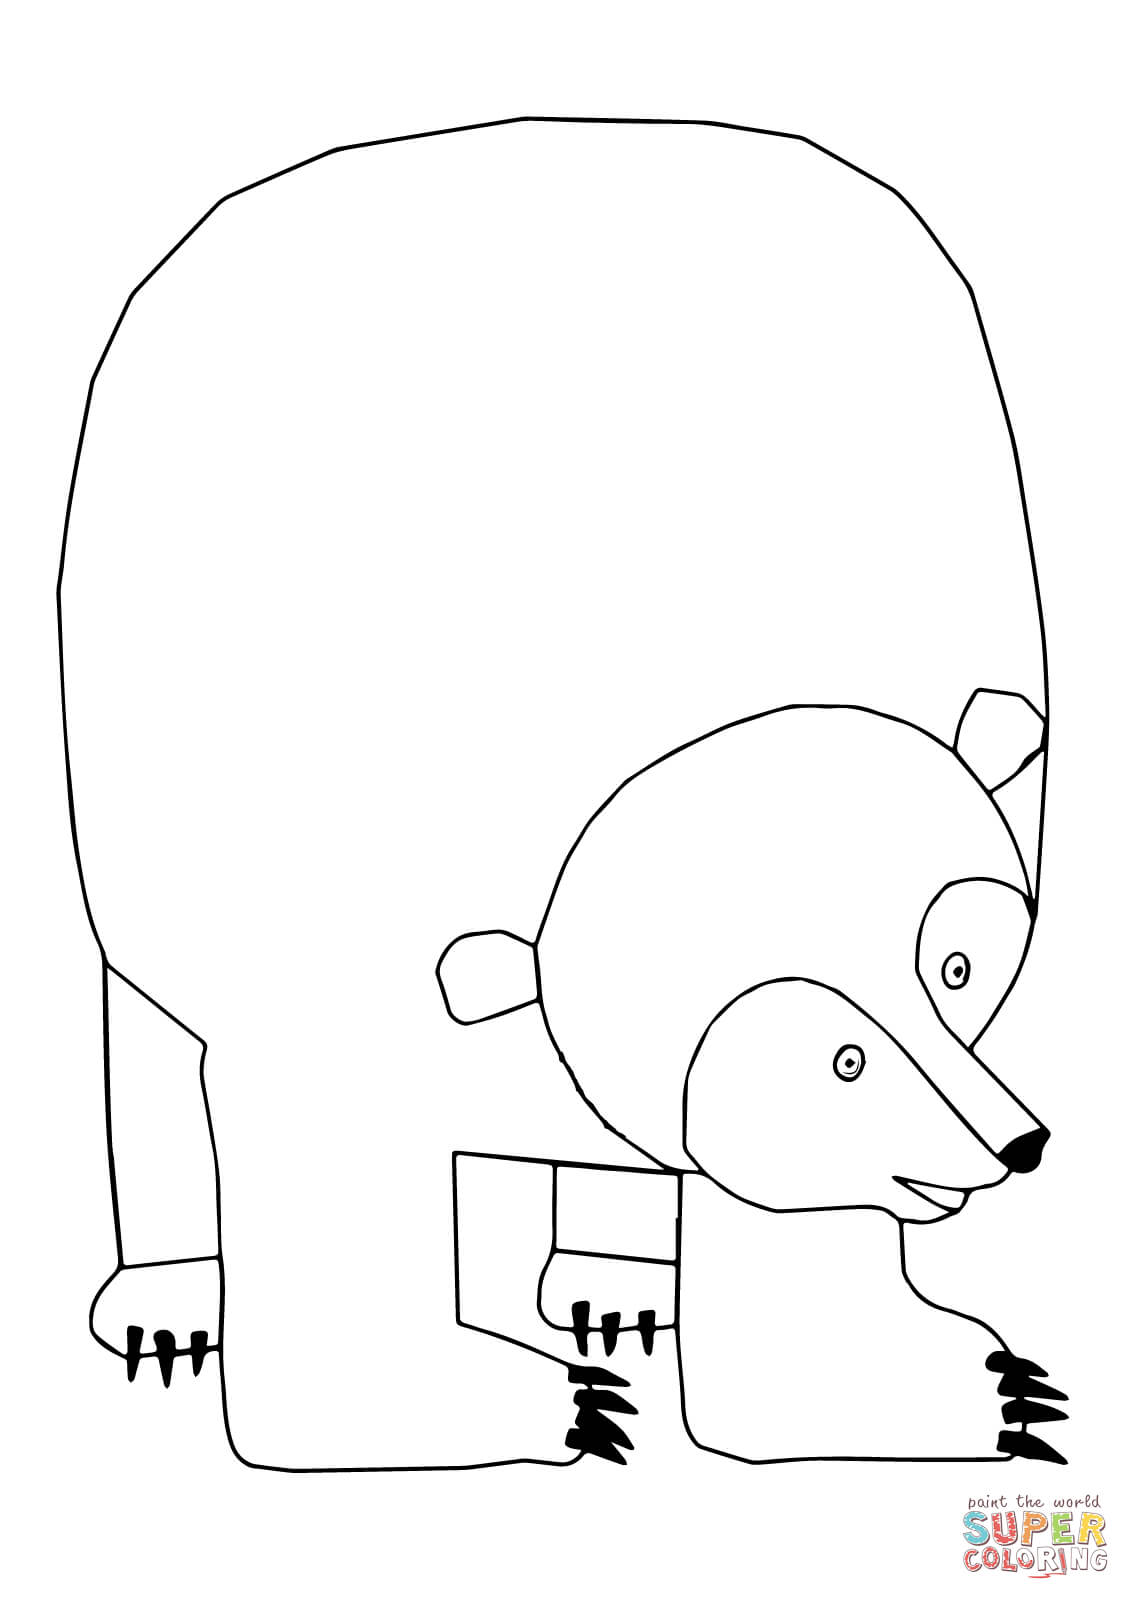 brown bear colouring page 1000 images about brown bear brown bear what do you see colouring brown bear page